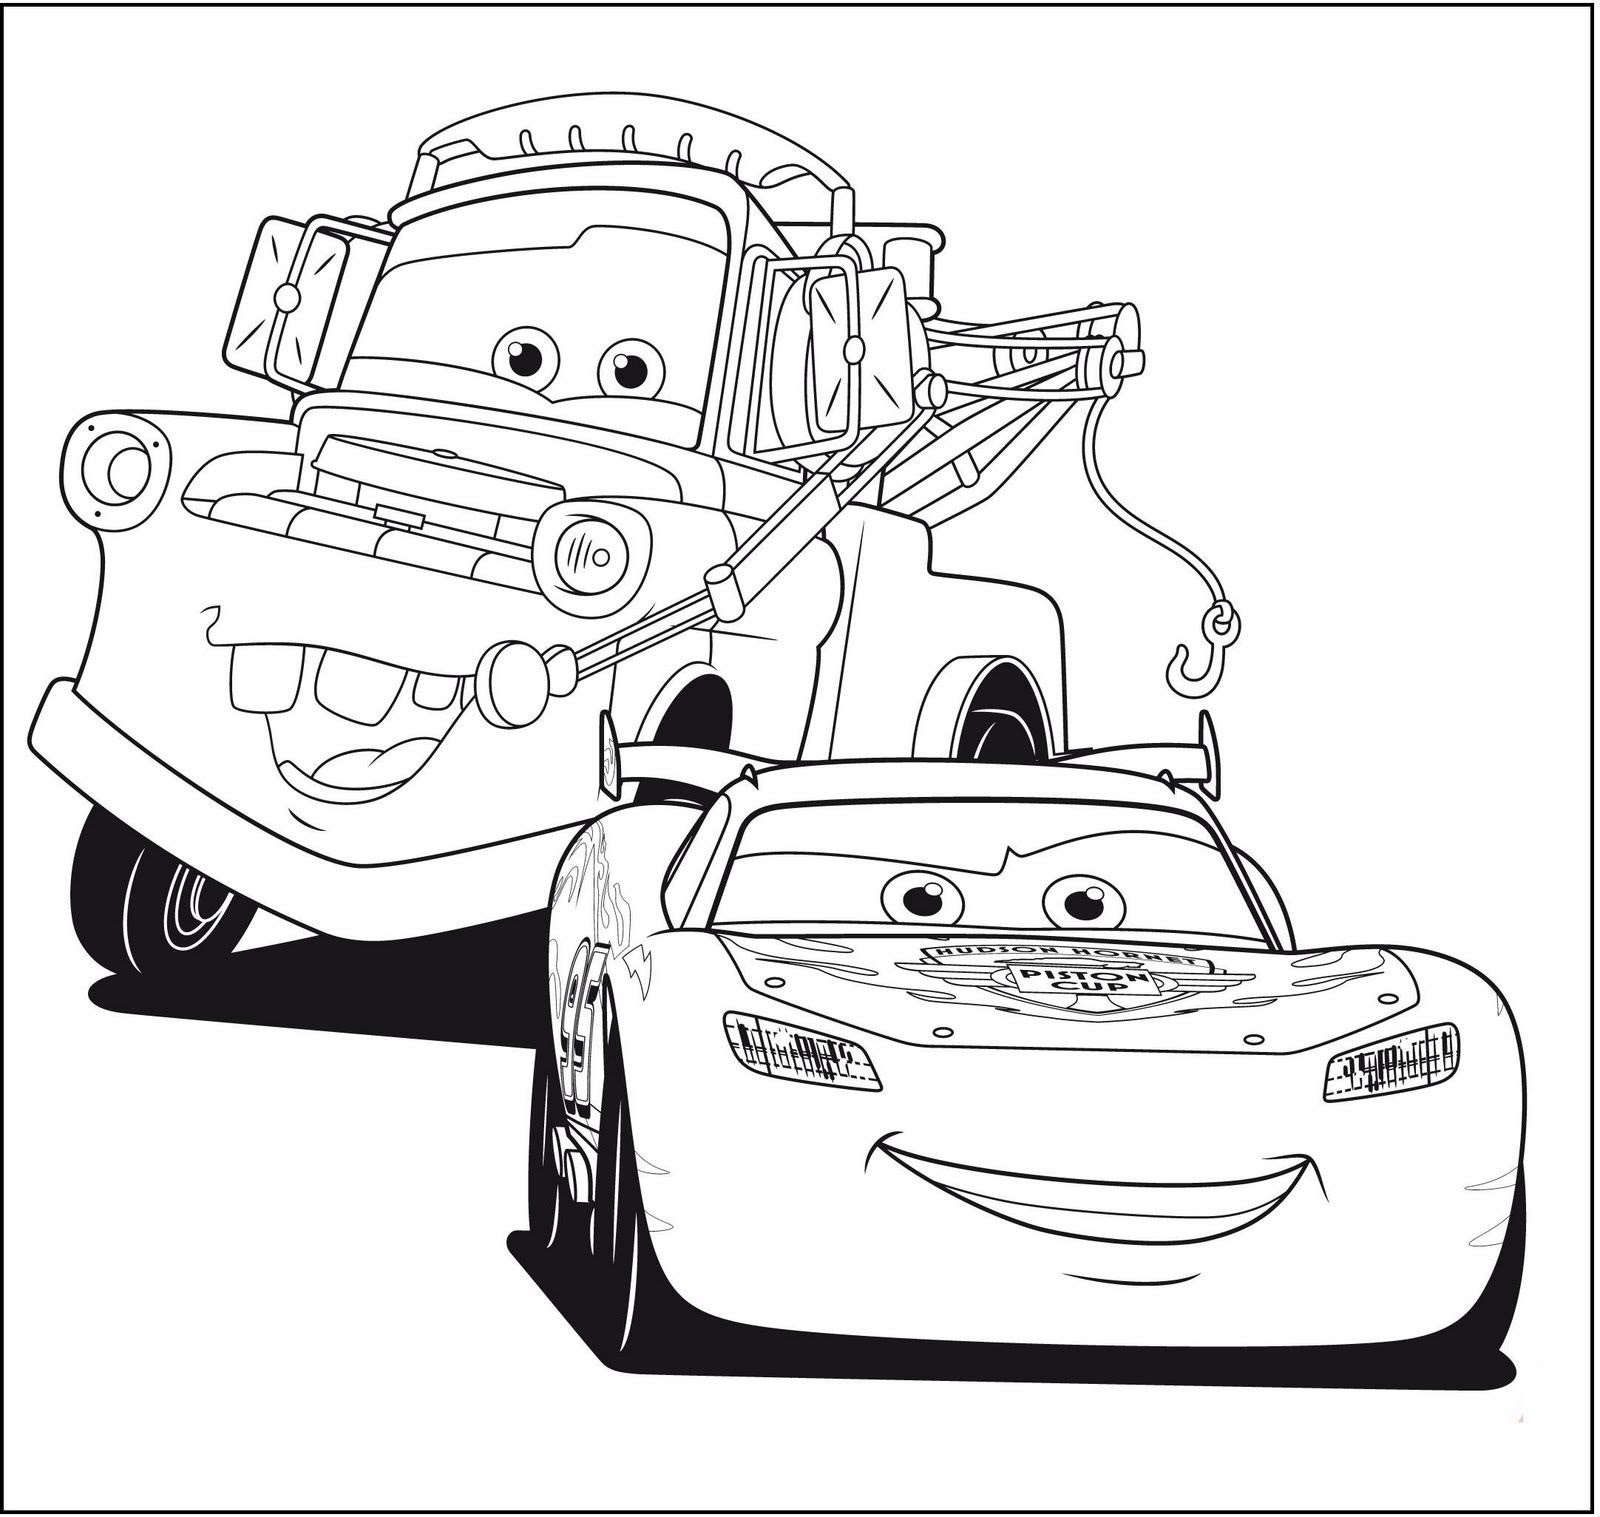 5100 Disney Cars Coloring Book Pdf Best HD